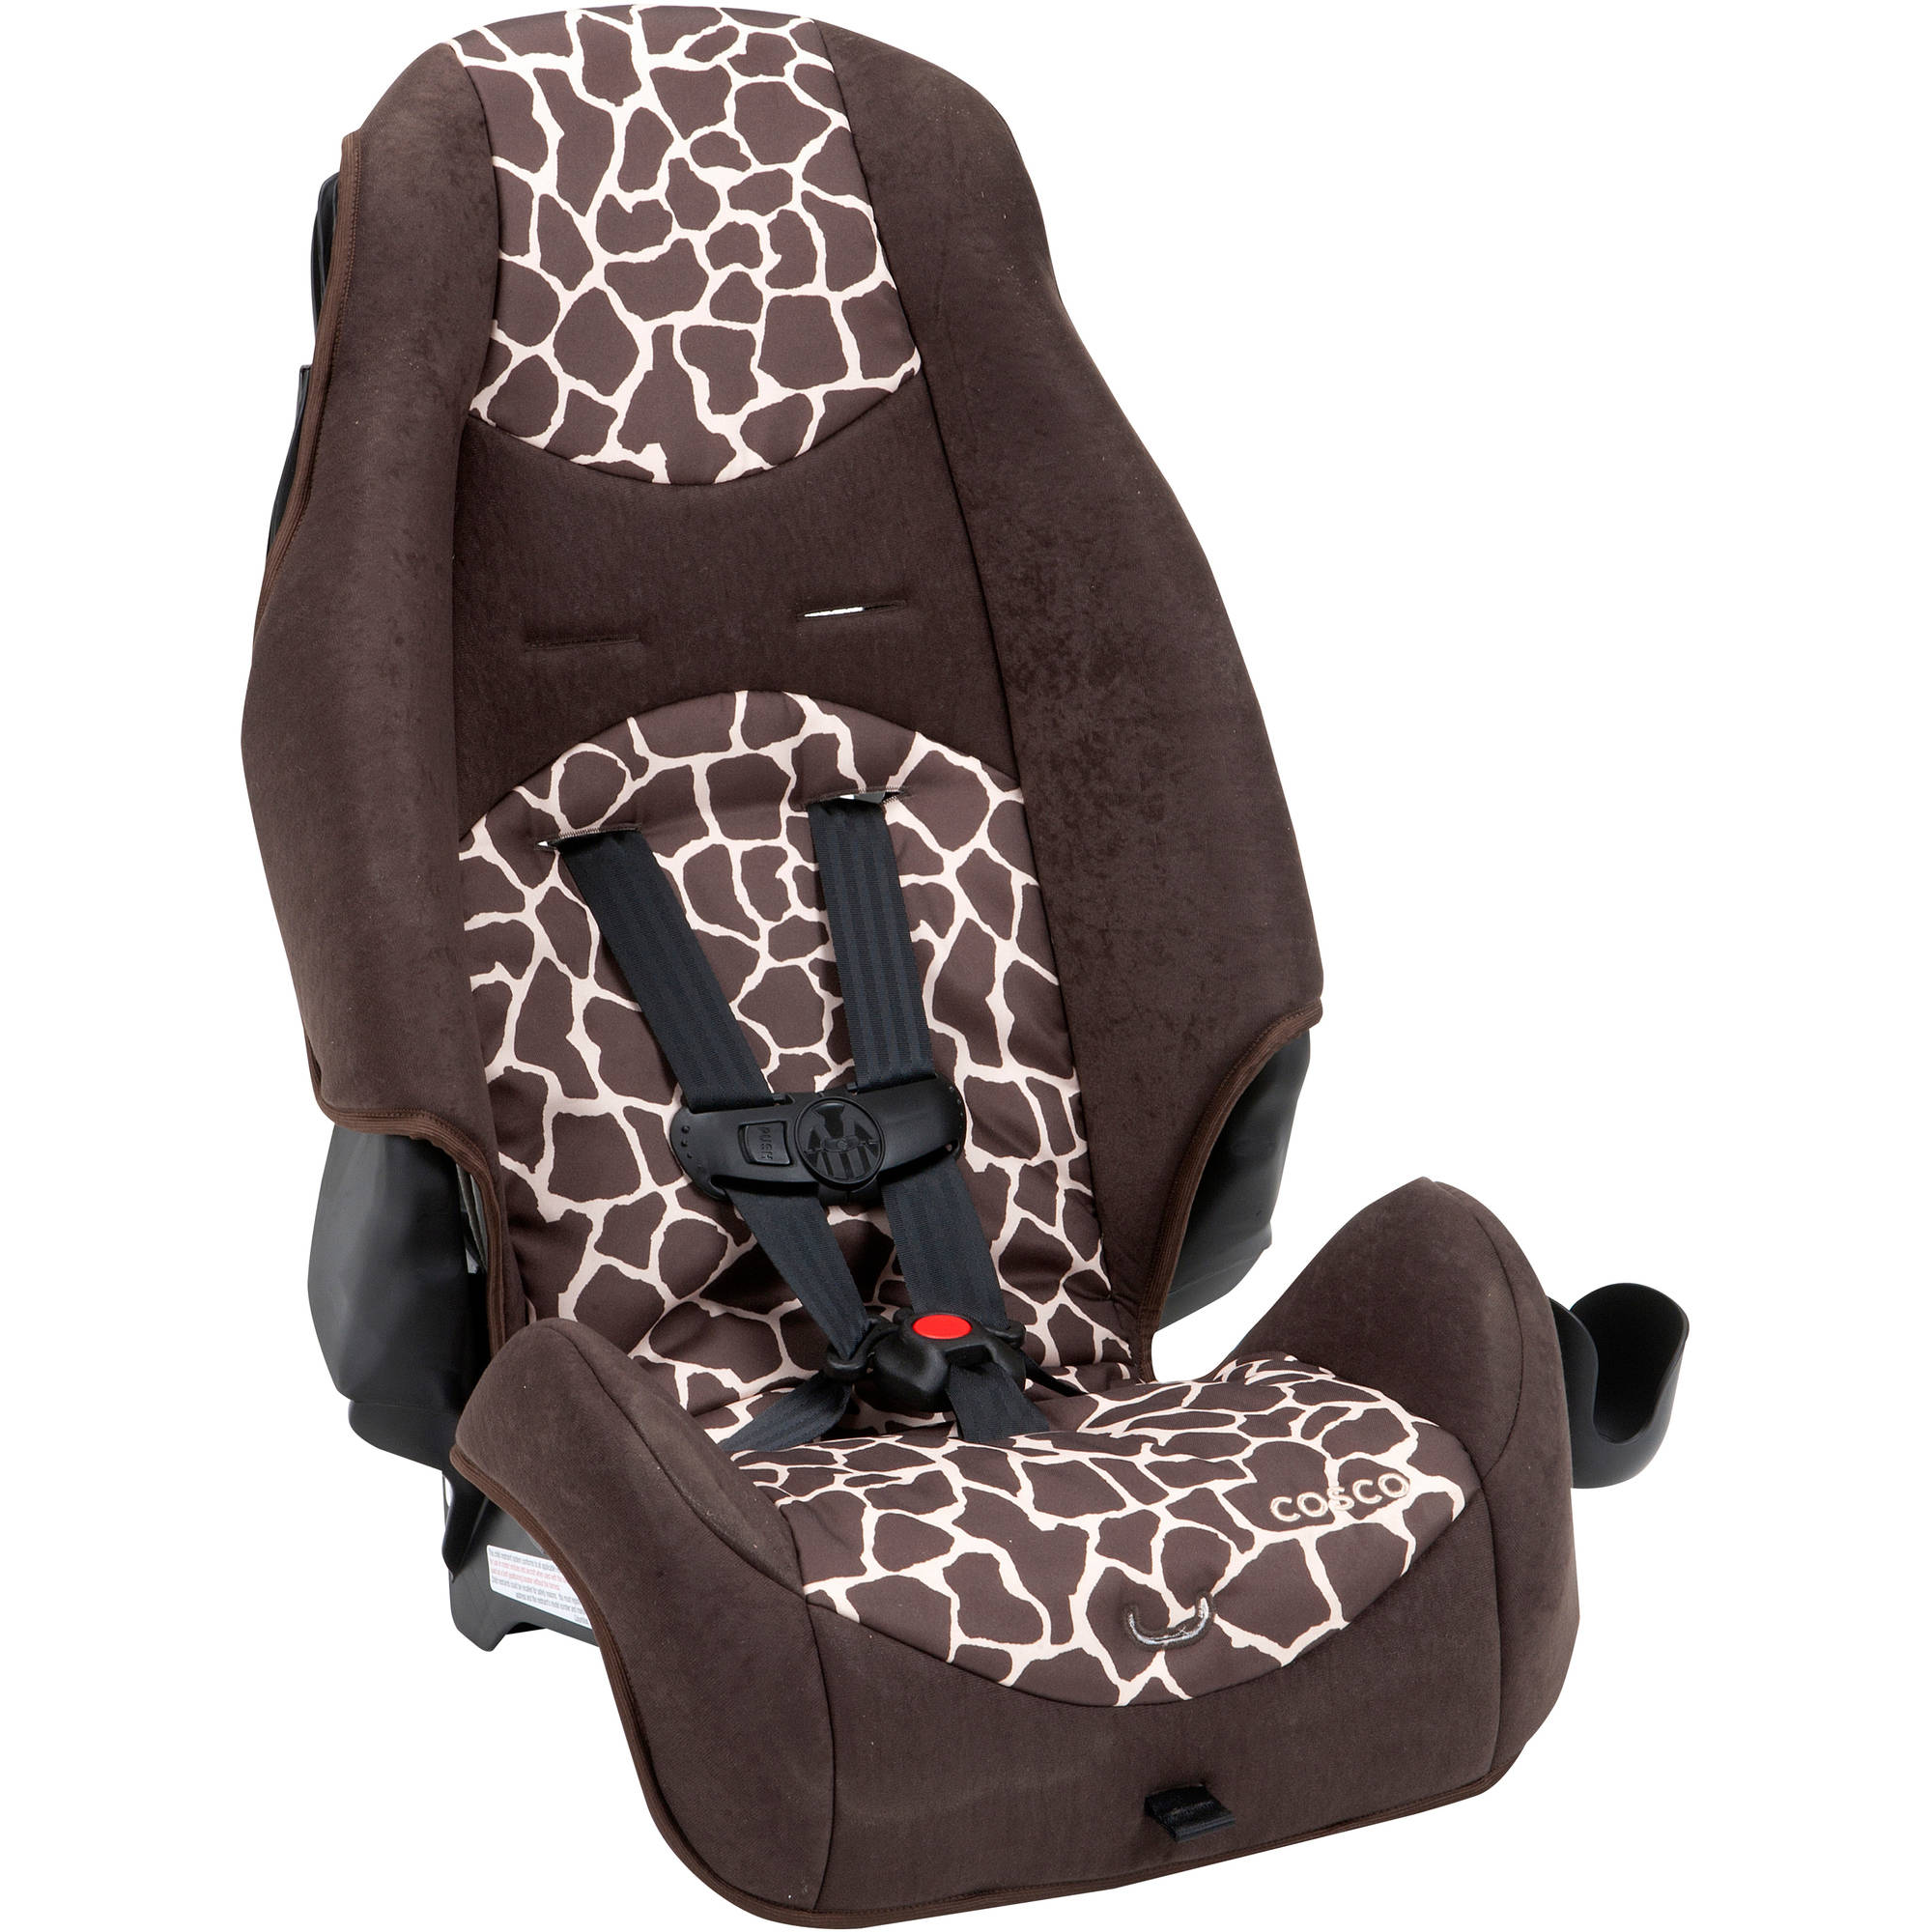 Cosco Highback 2 in 1 Booster Car Seat Quigley | eBay